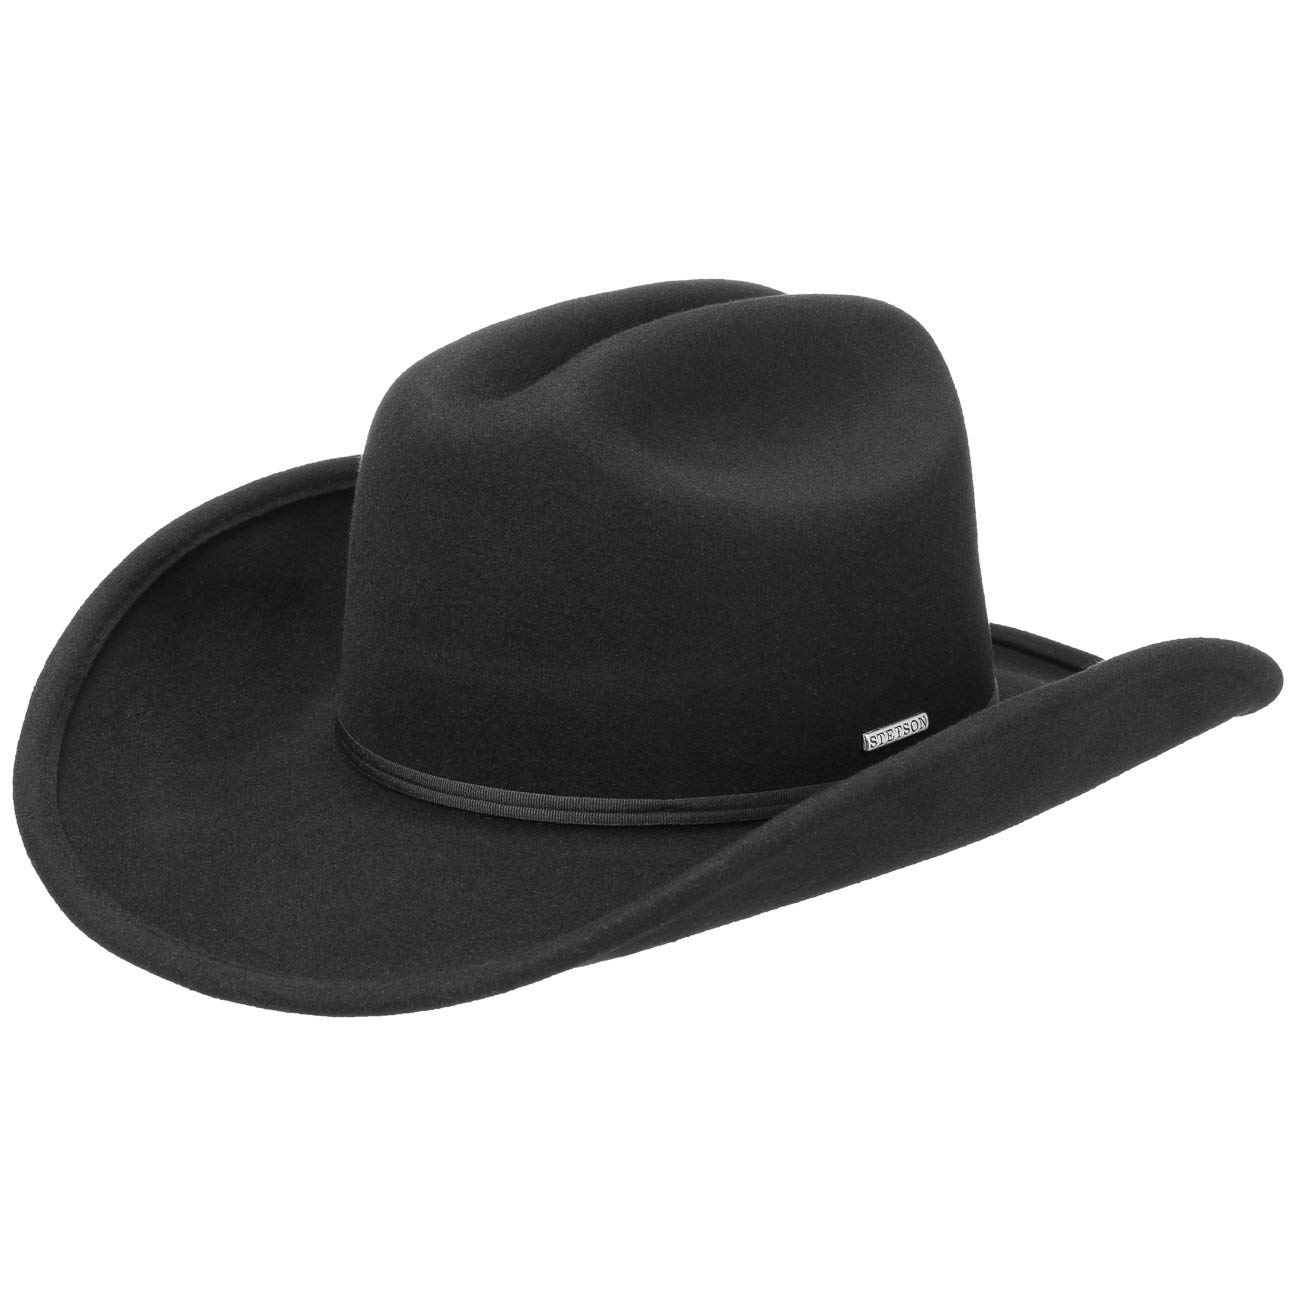 Lizzy® Deluxe Adults Unisex Union Jack Flag Stetson Cowboy Hat With Neck  Cord - Great 75b337cf358f